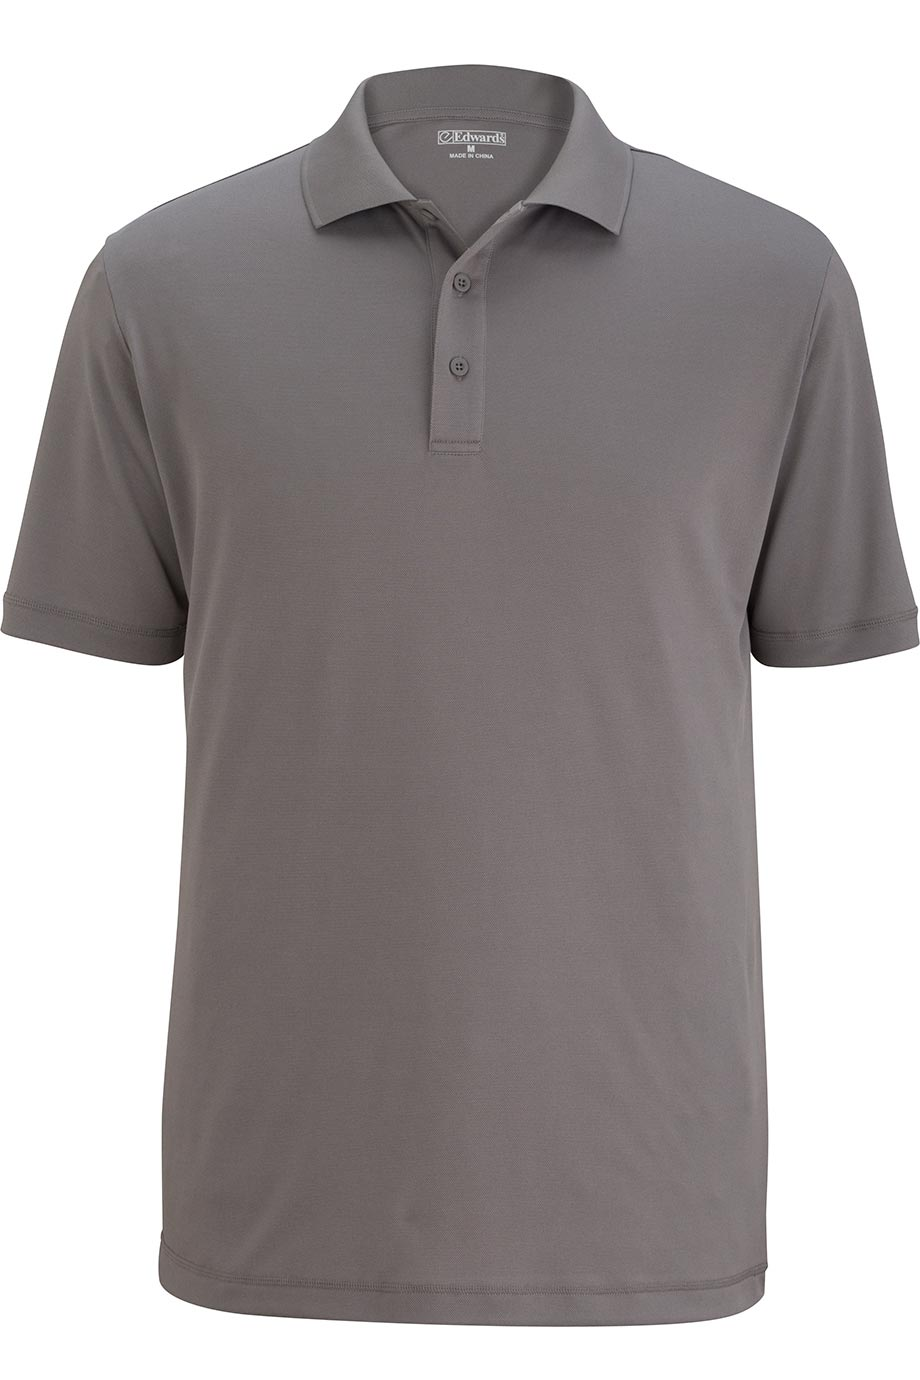 Cool Grey Edwards Mens Durable Performance Polo